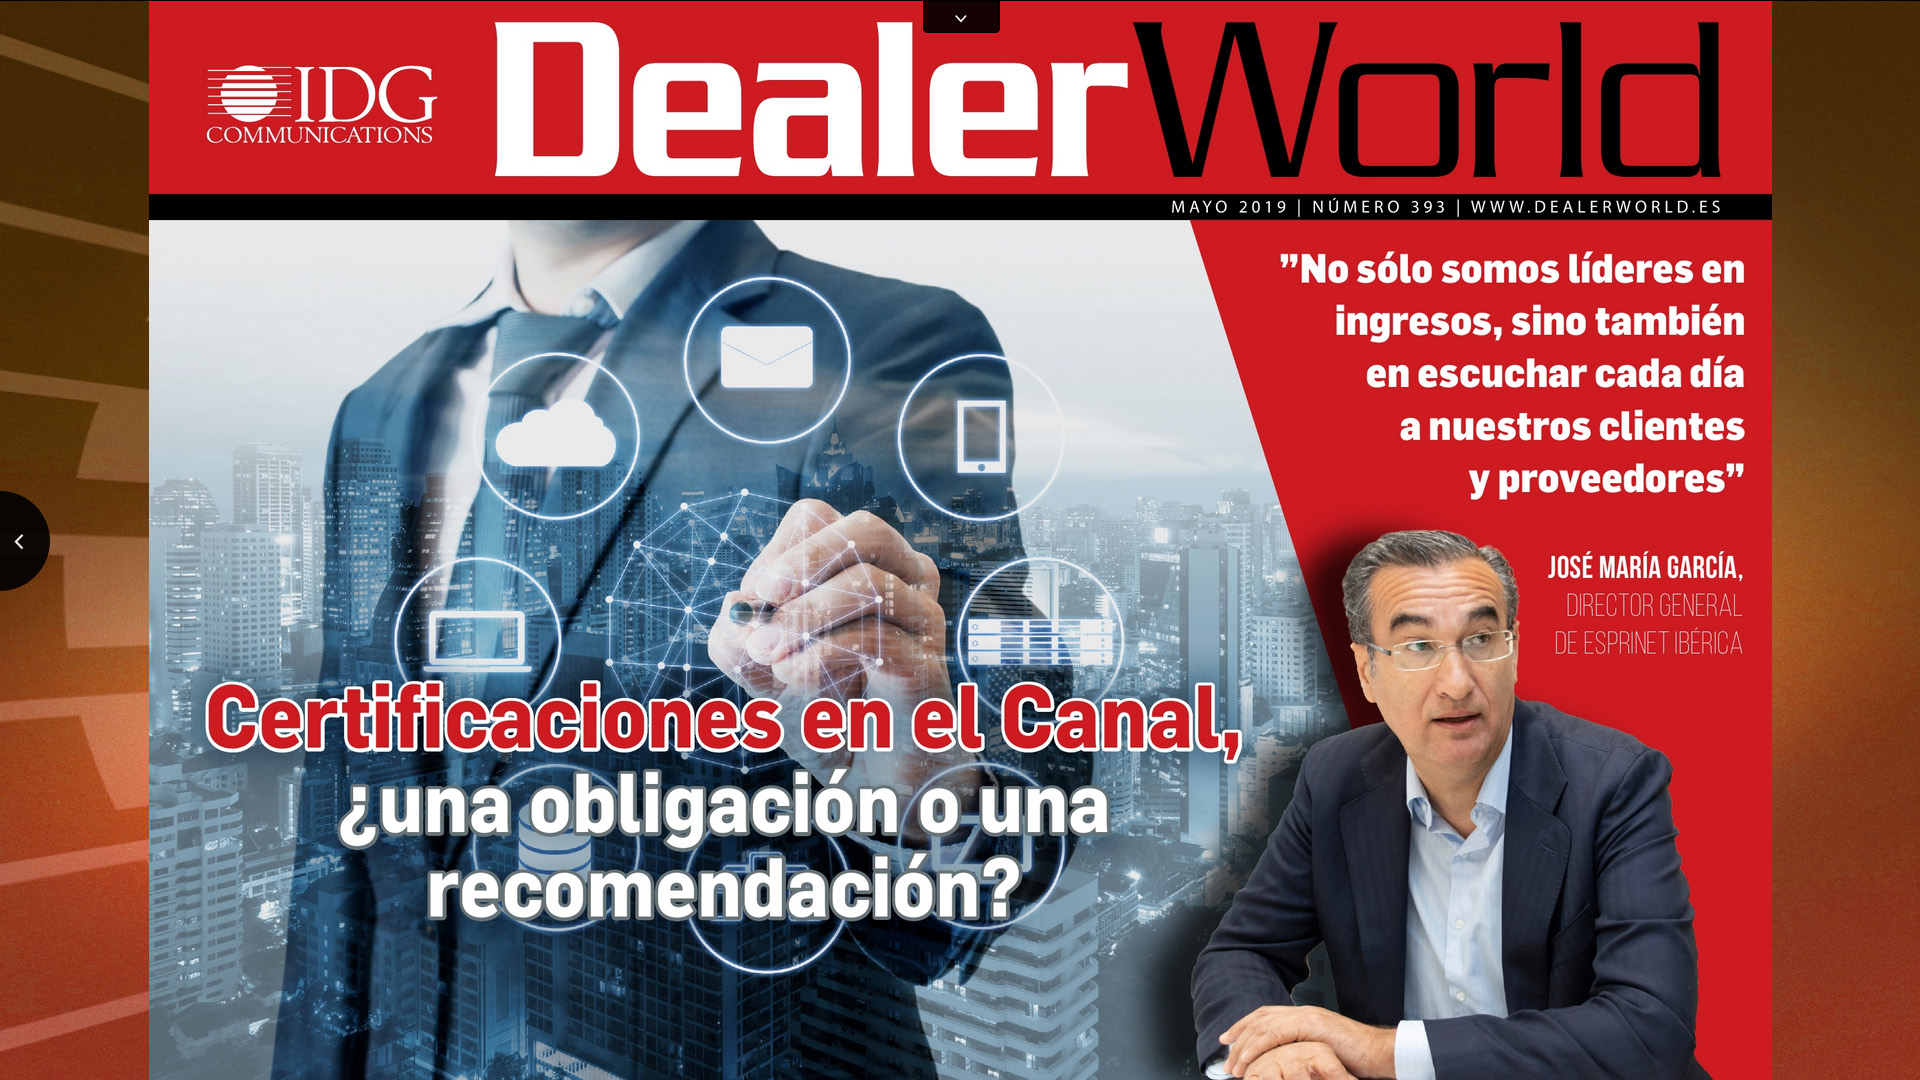 DealerWorld portada mayo 2019